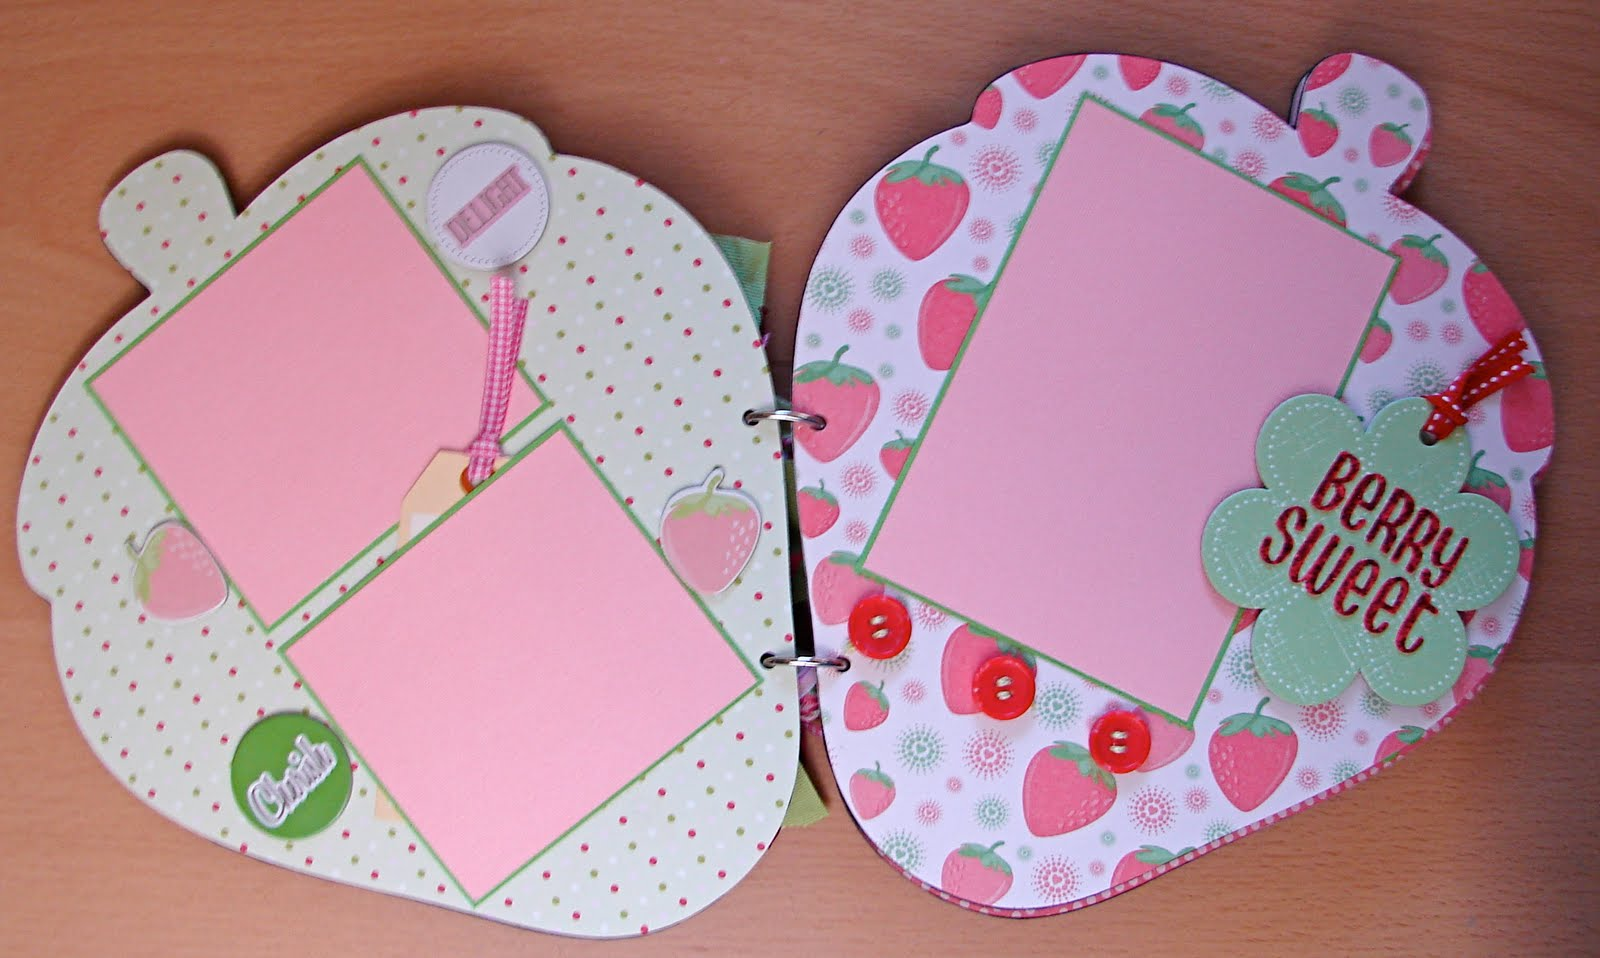 Scrapbook ideas hello kitty -  I Have Been Scrapbooking I Thought Up Of A New Chipboard Album Idea A Strawberry And Thanks To My Hello Kitty Cricut Cartridge Here It Is